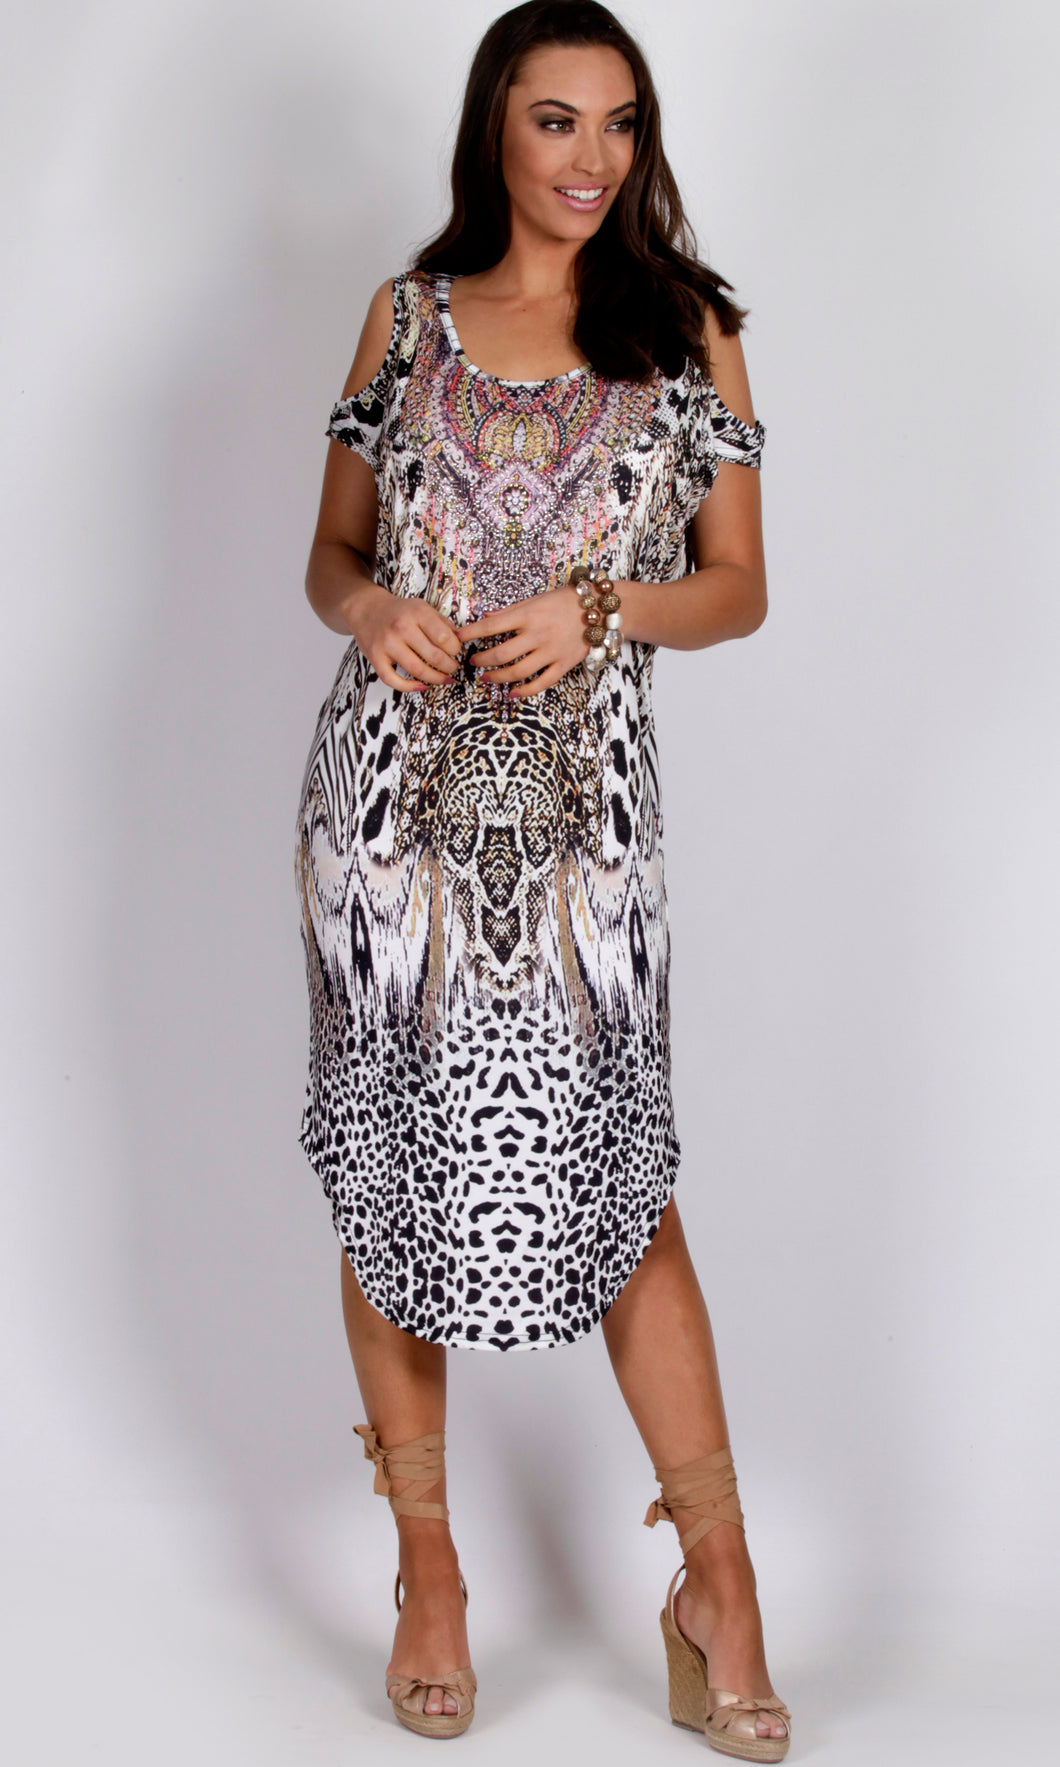 CH1070-45SS Cold Shoulder Rhinestone Embellished Animal Print Dress (Pack)